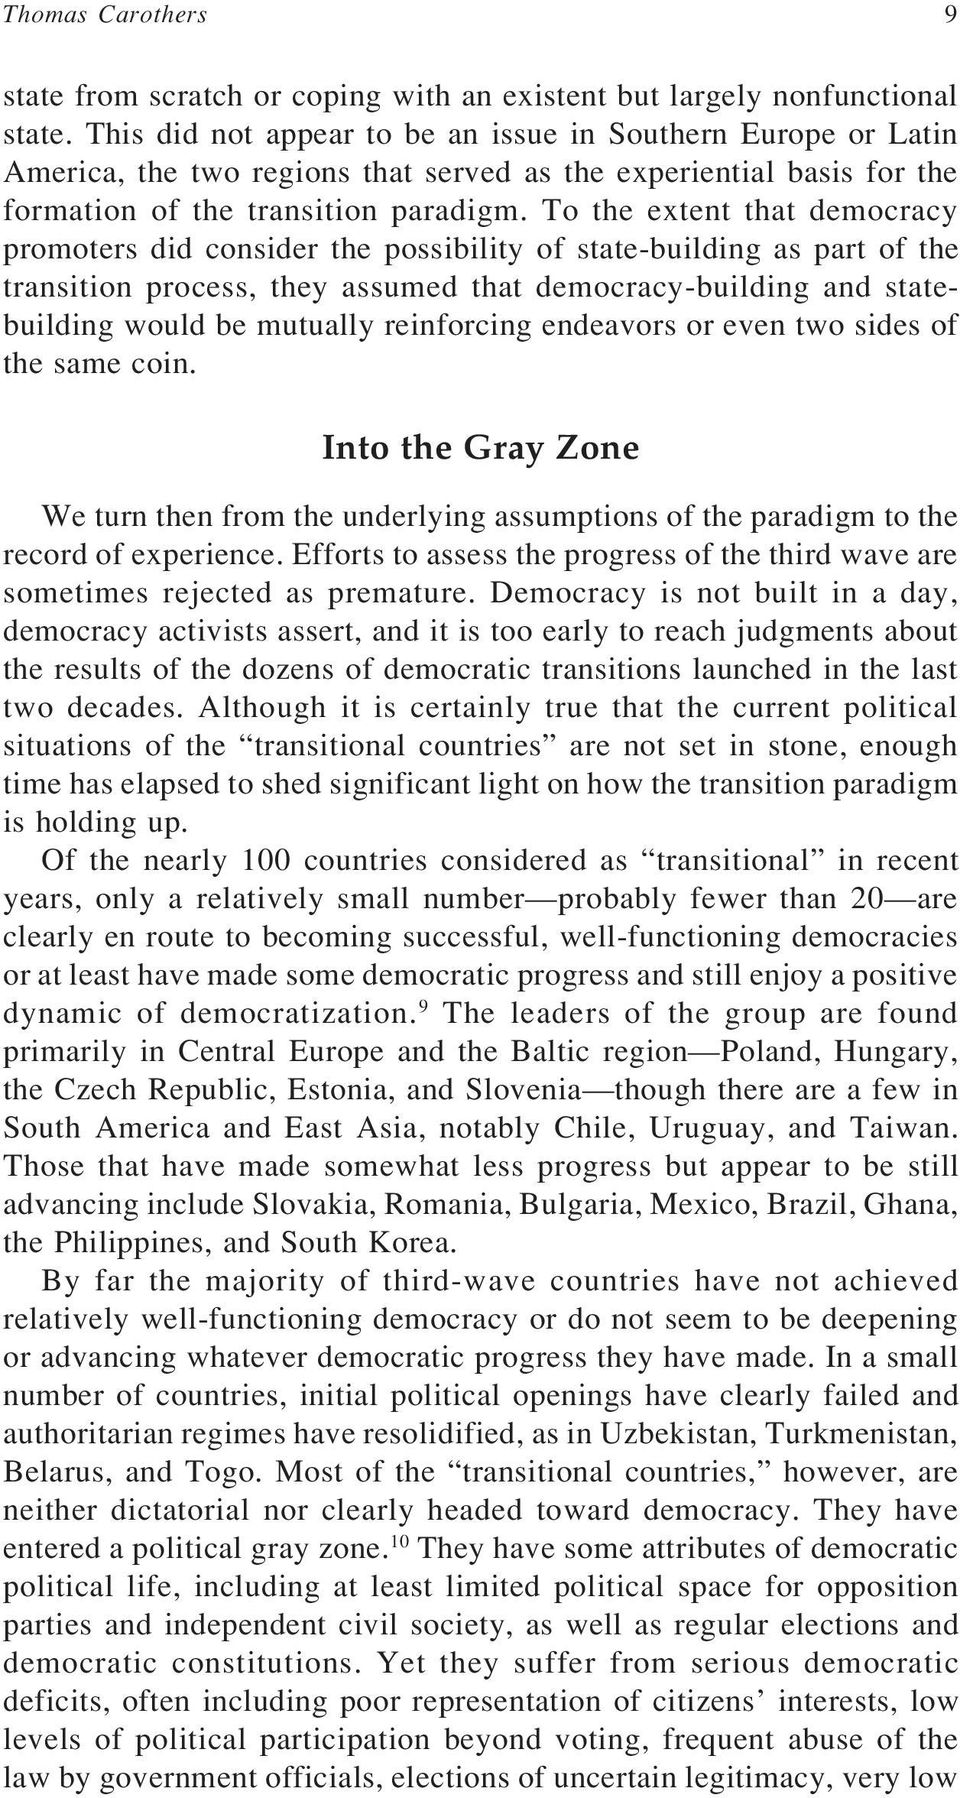 To the extent that democracy promoters did consider the possibility of state-building as part of the transition process, they assumed that democracy-building and statebuilding would be mutually